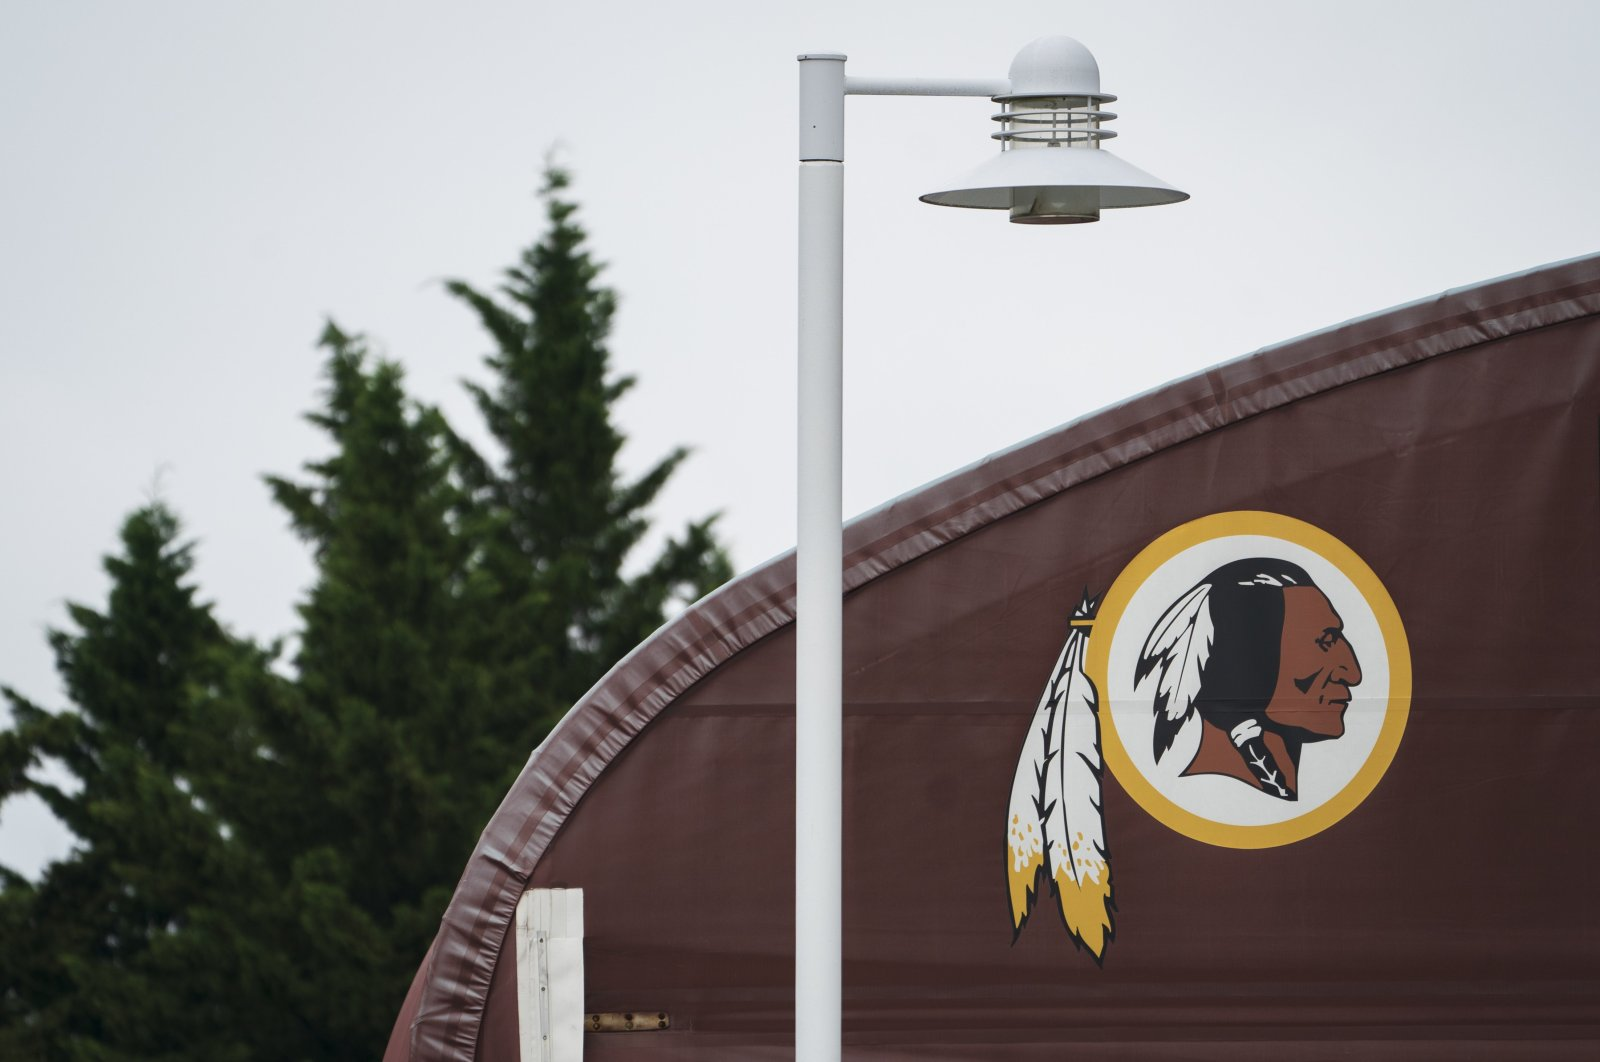 A Washington Redskins logo is seen on the outside of FedEx Field in Landover, Maryland, July 7, 2020. (AFP Photo)